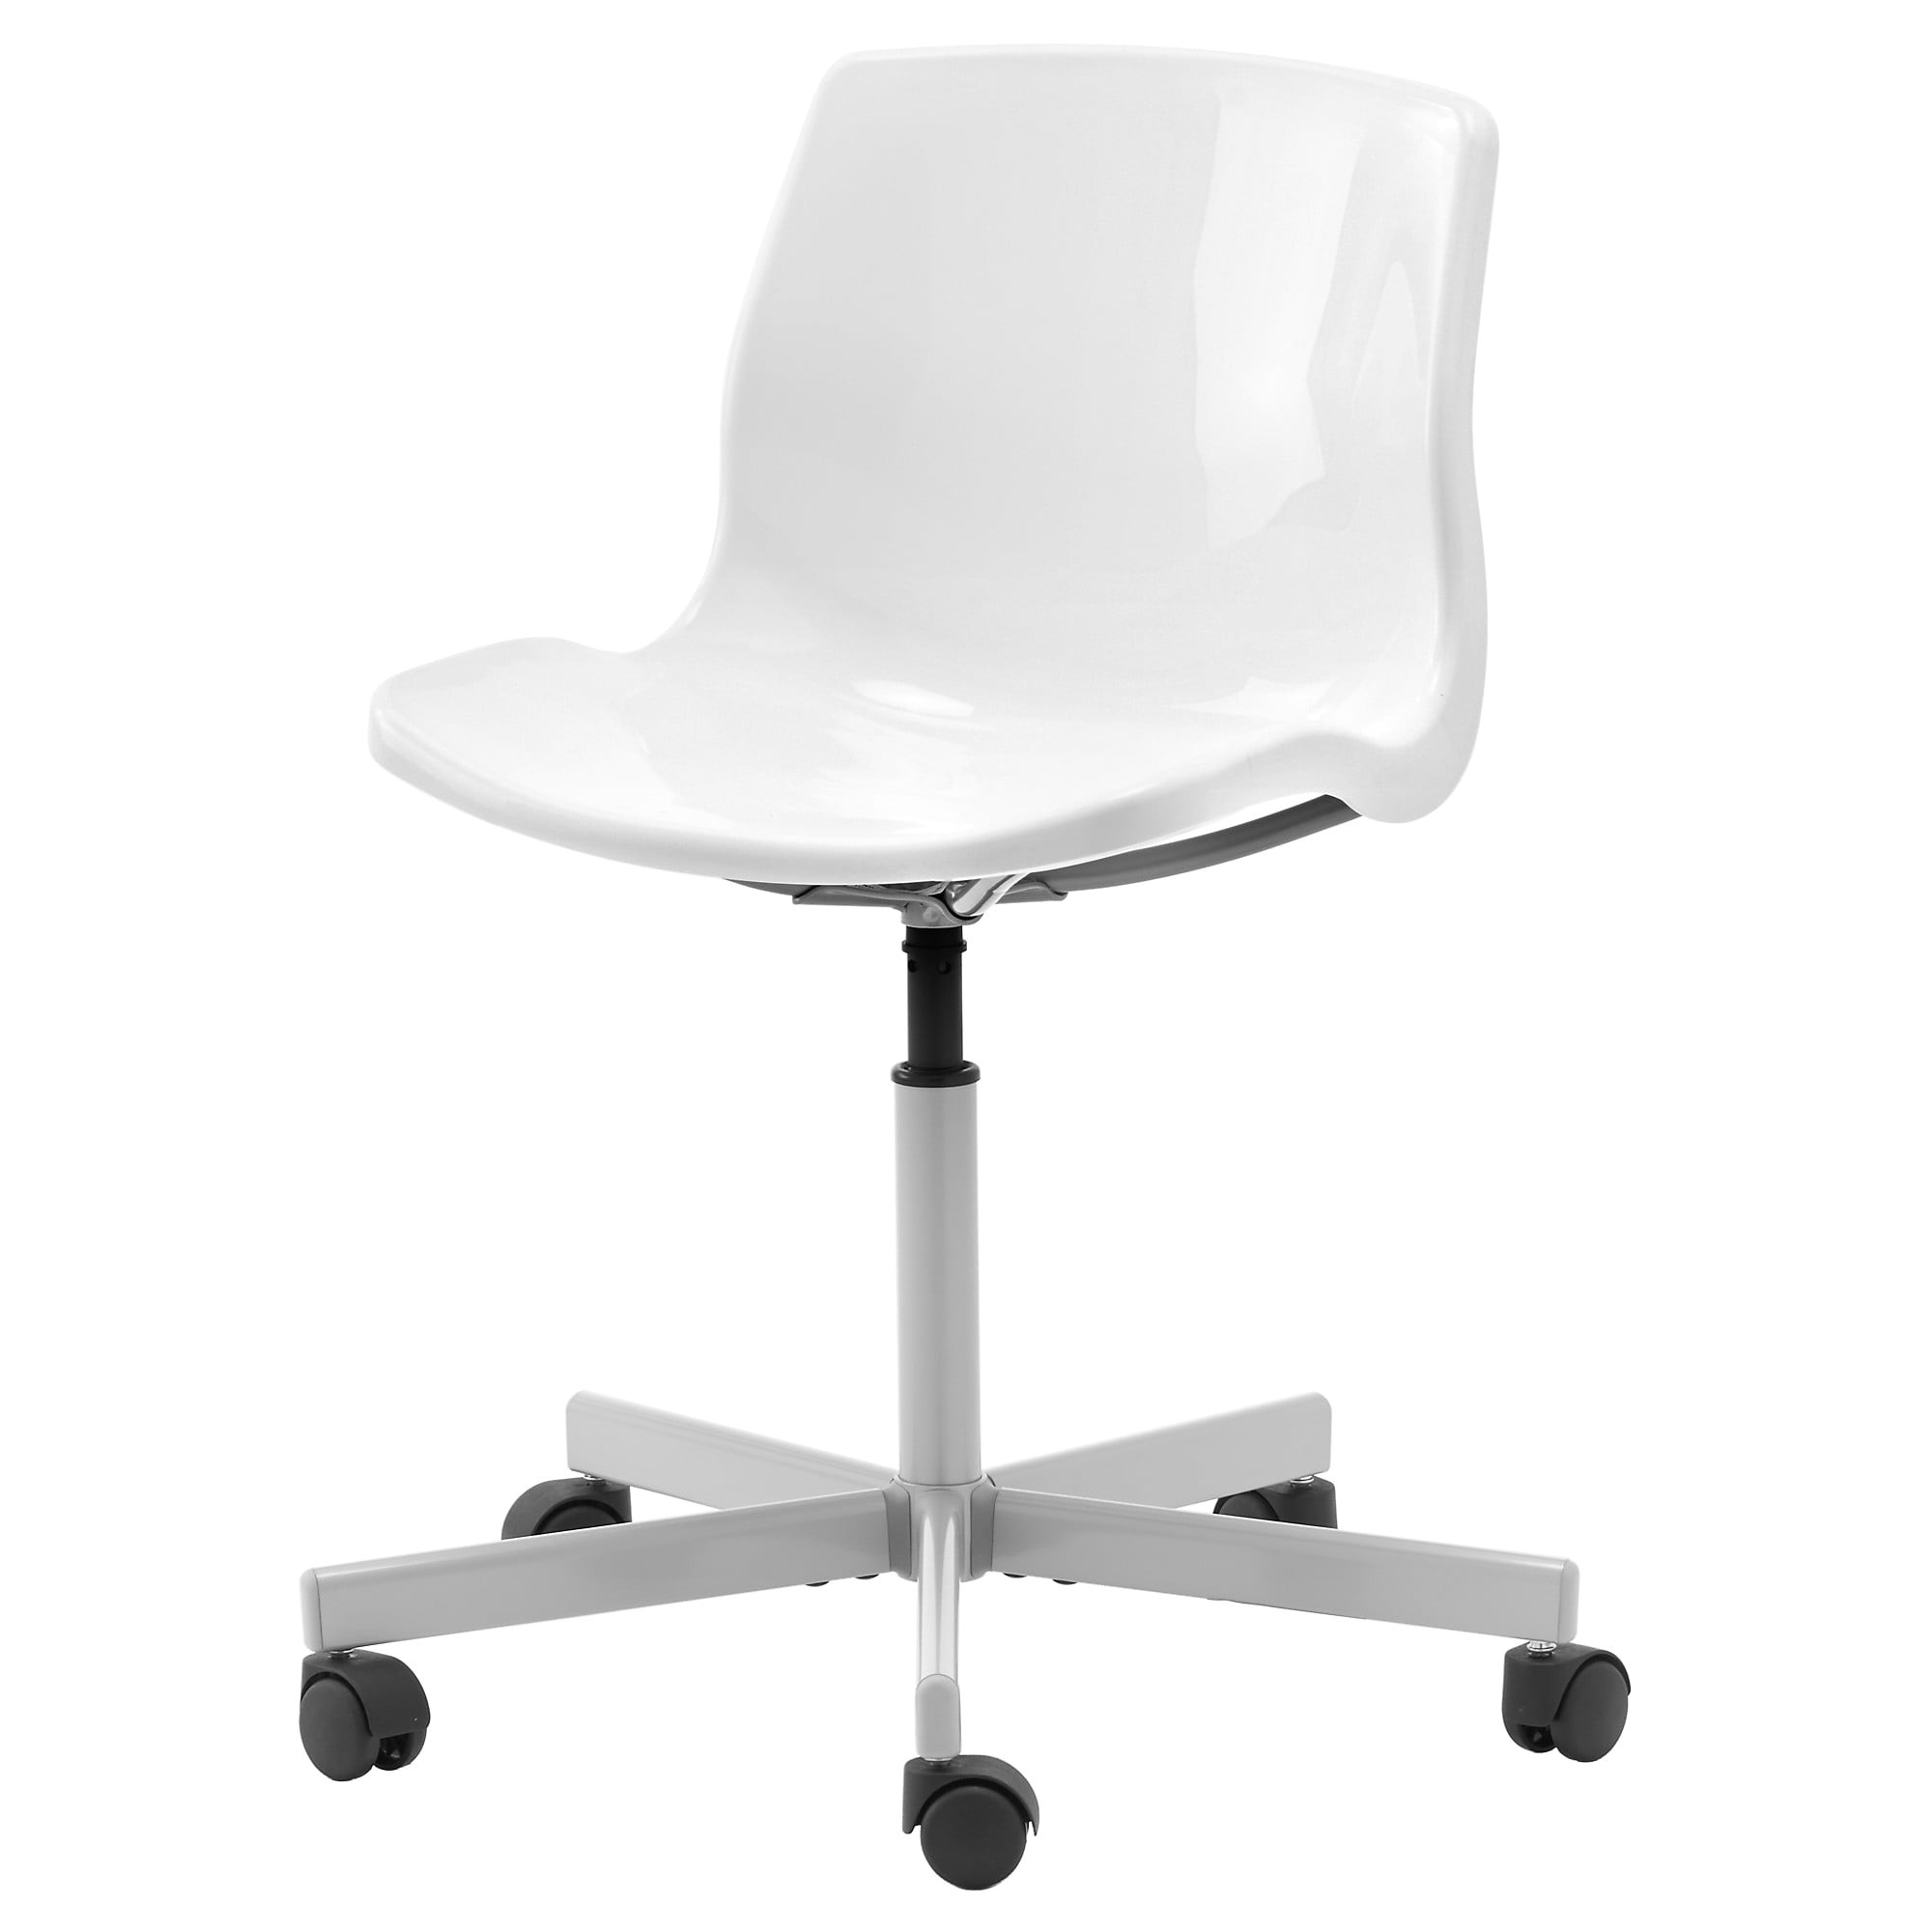 ikea snille swivel chair you sit comfortably since the chair is adjustable in height